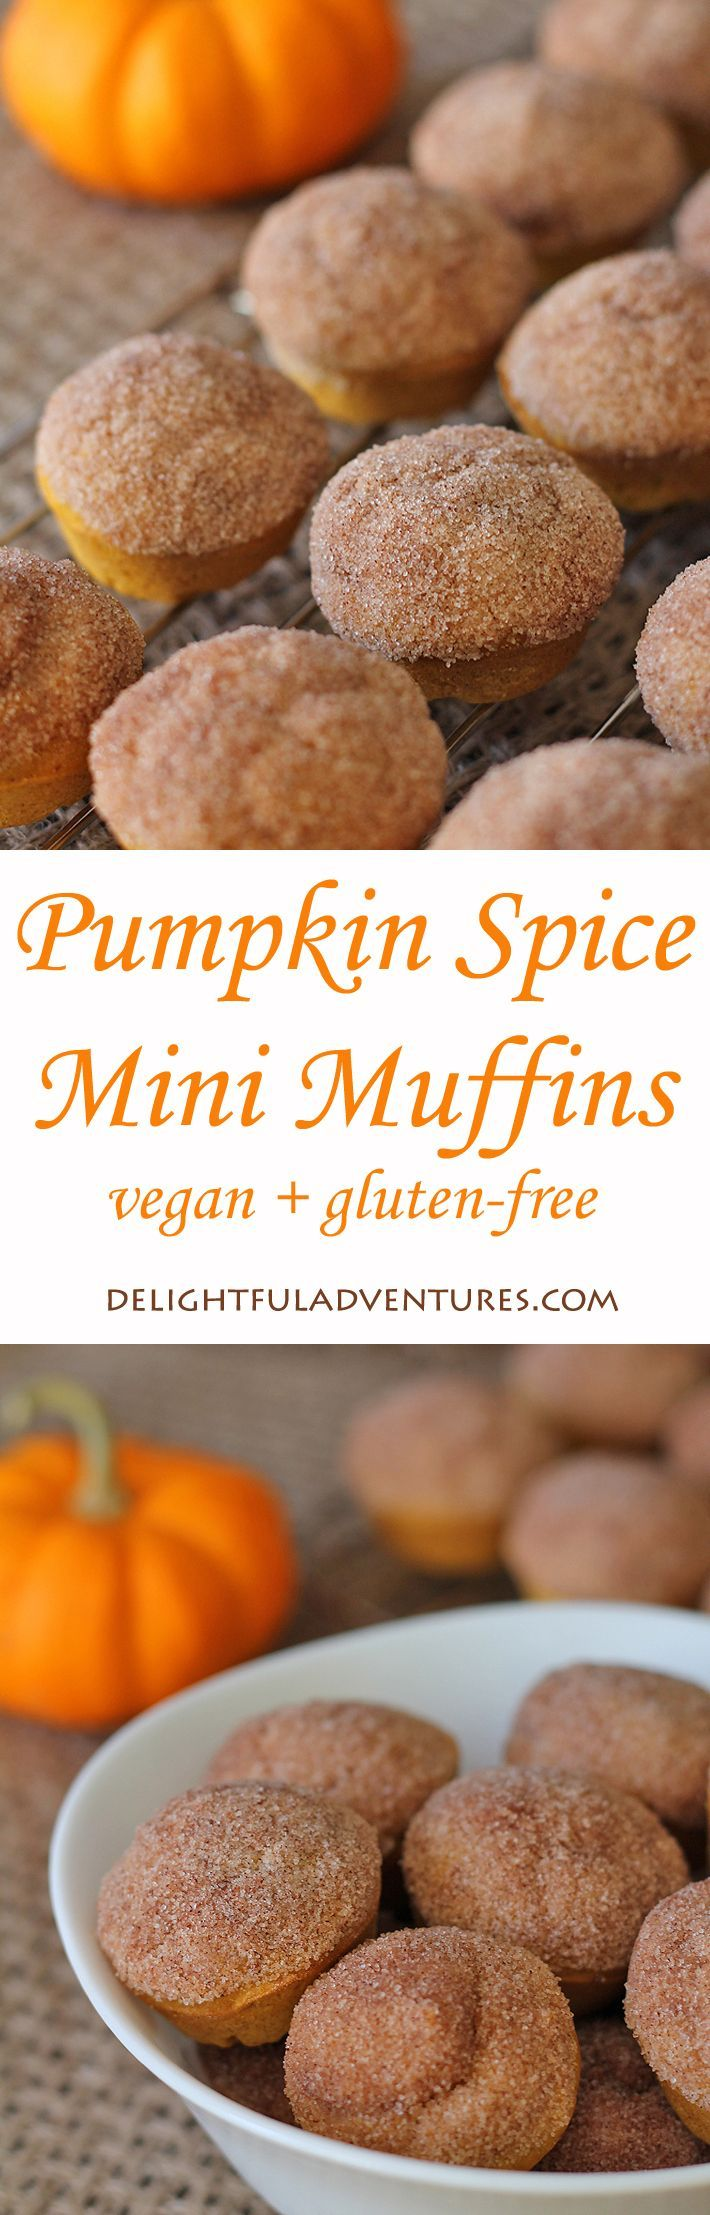 These vegan, gluten-free pumpkin spice mini muffins are the perfect treat for…